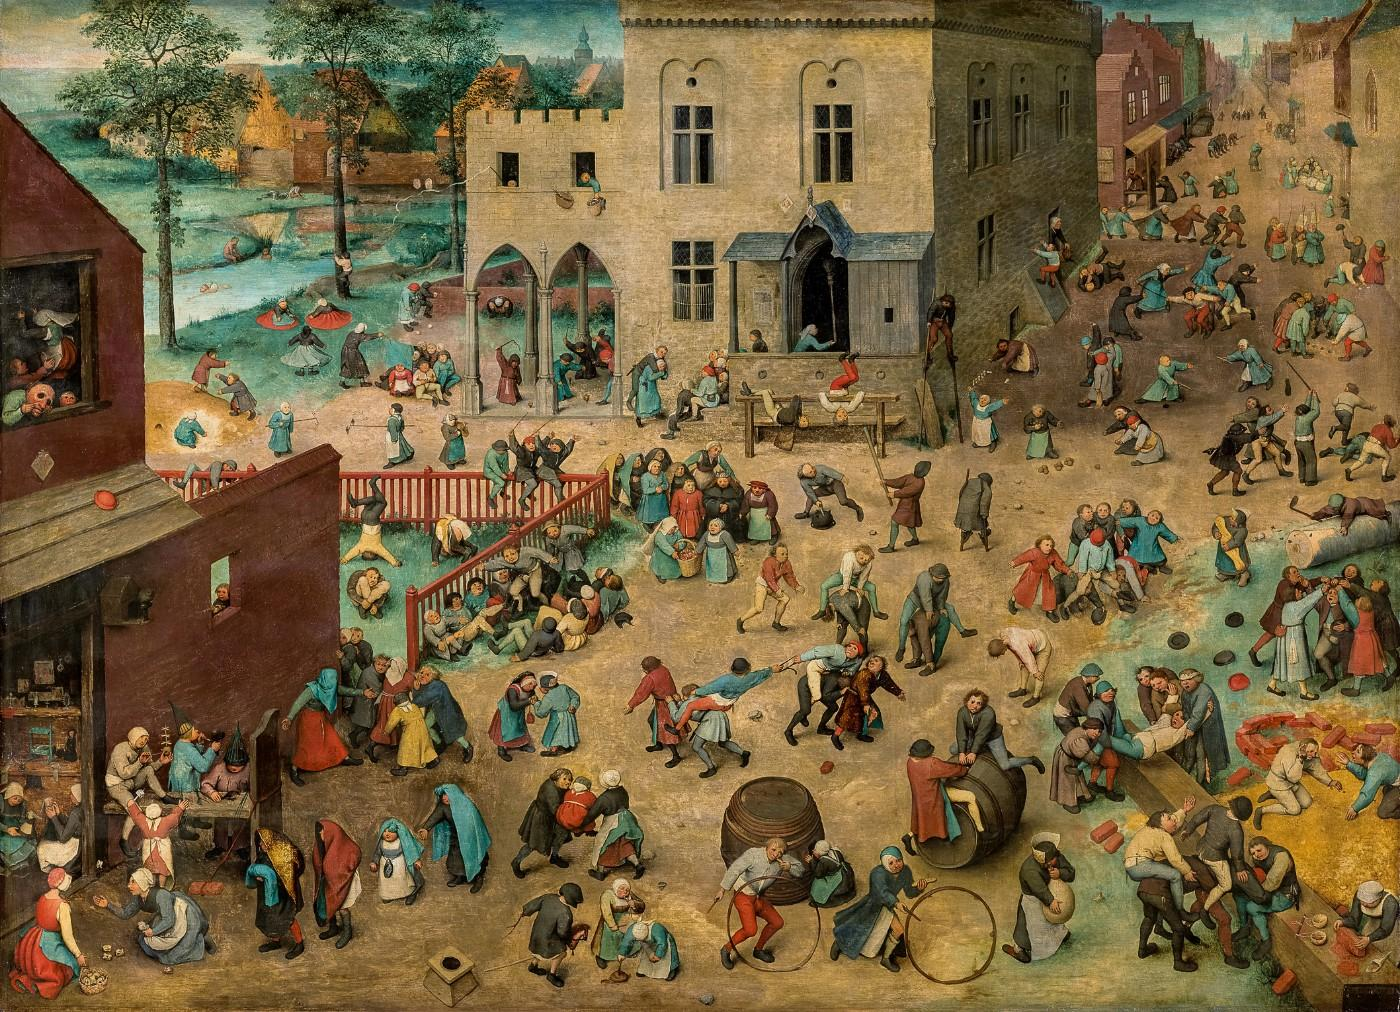 Pieter Bruegel the Elder, Children's Games, 1560